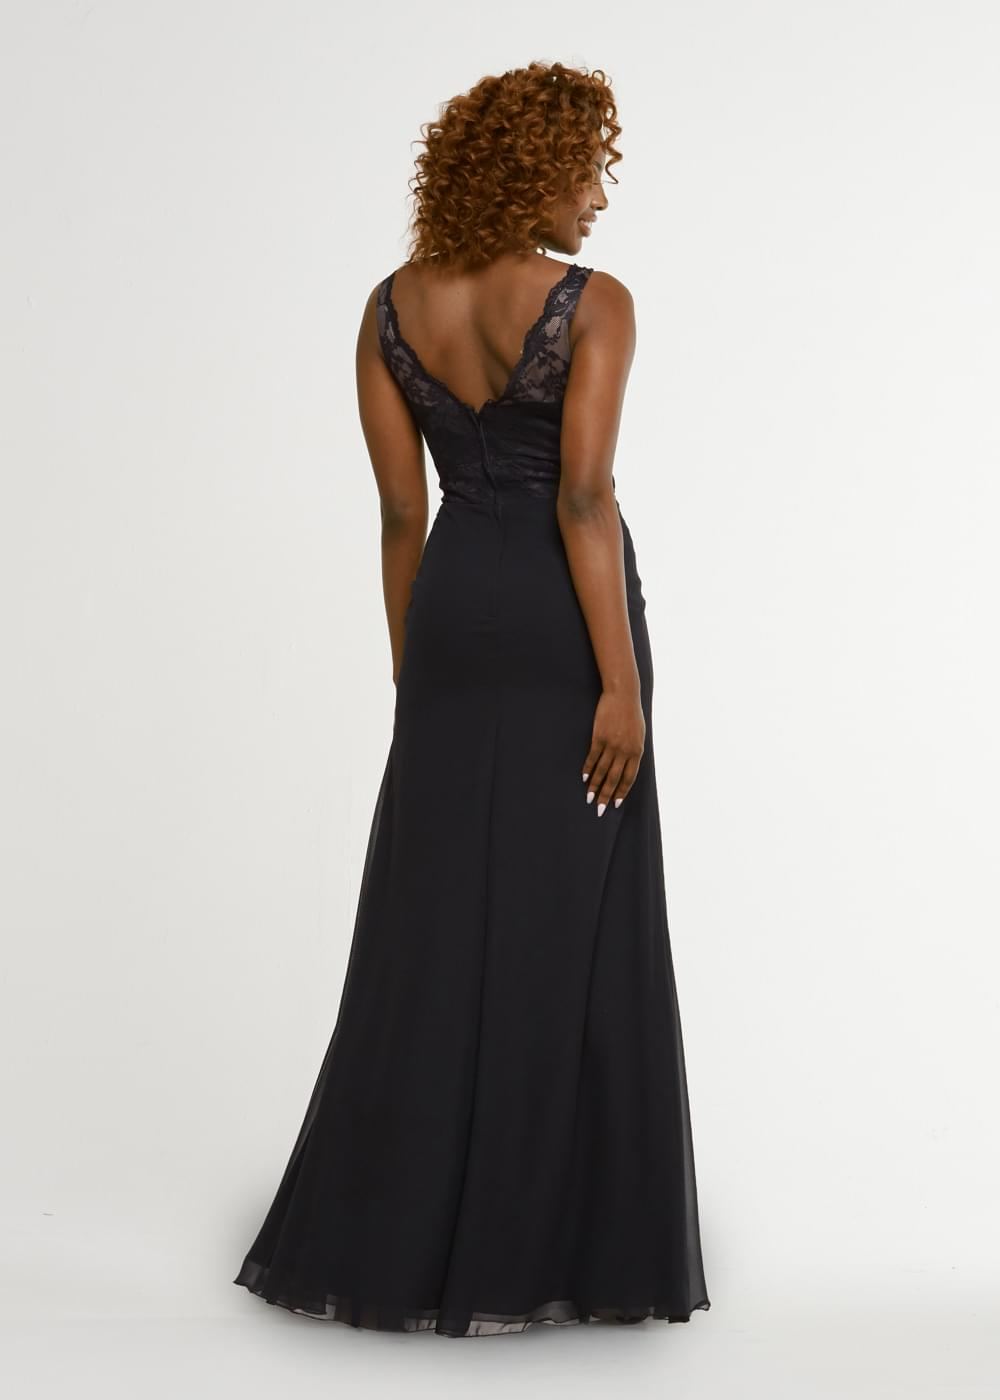 TH-80029 Black Dresses By Ashdon